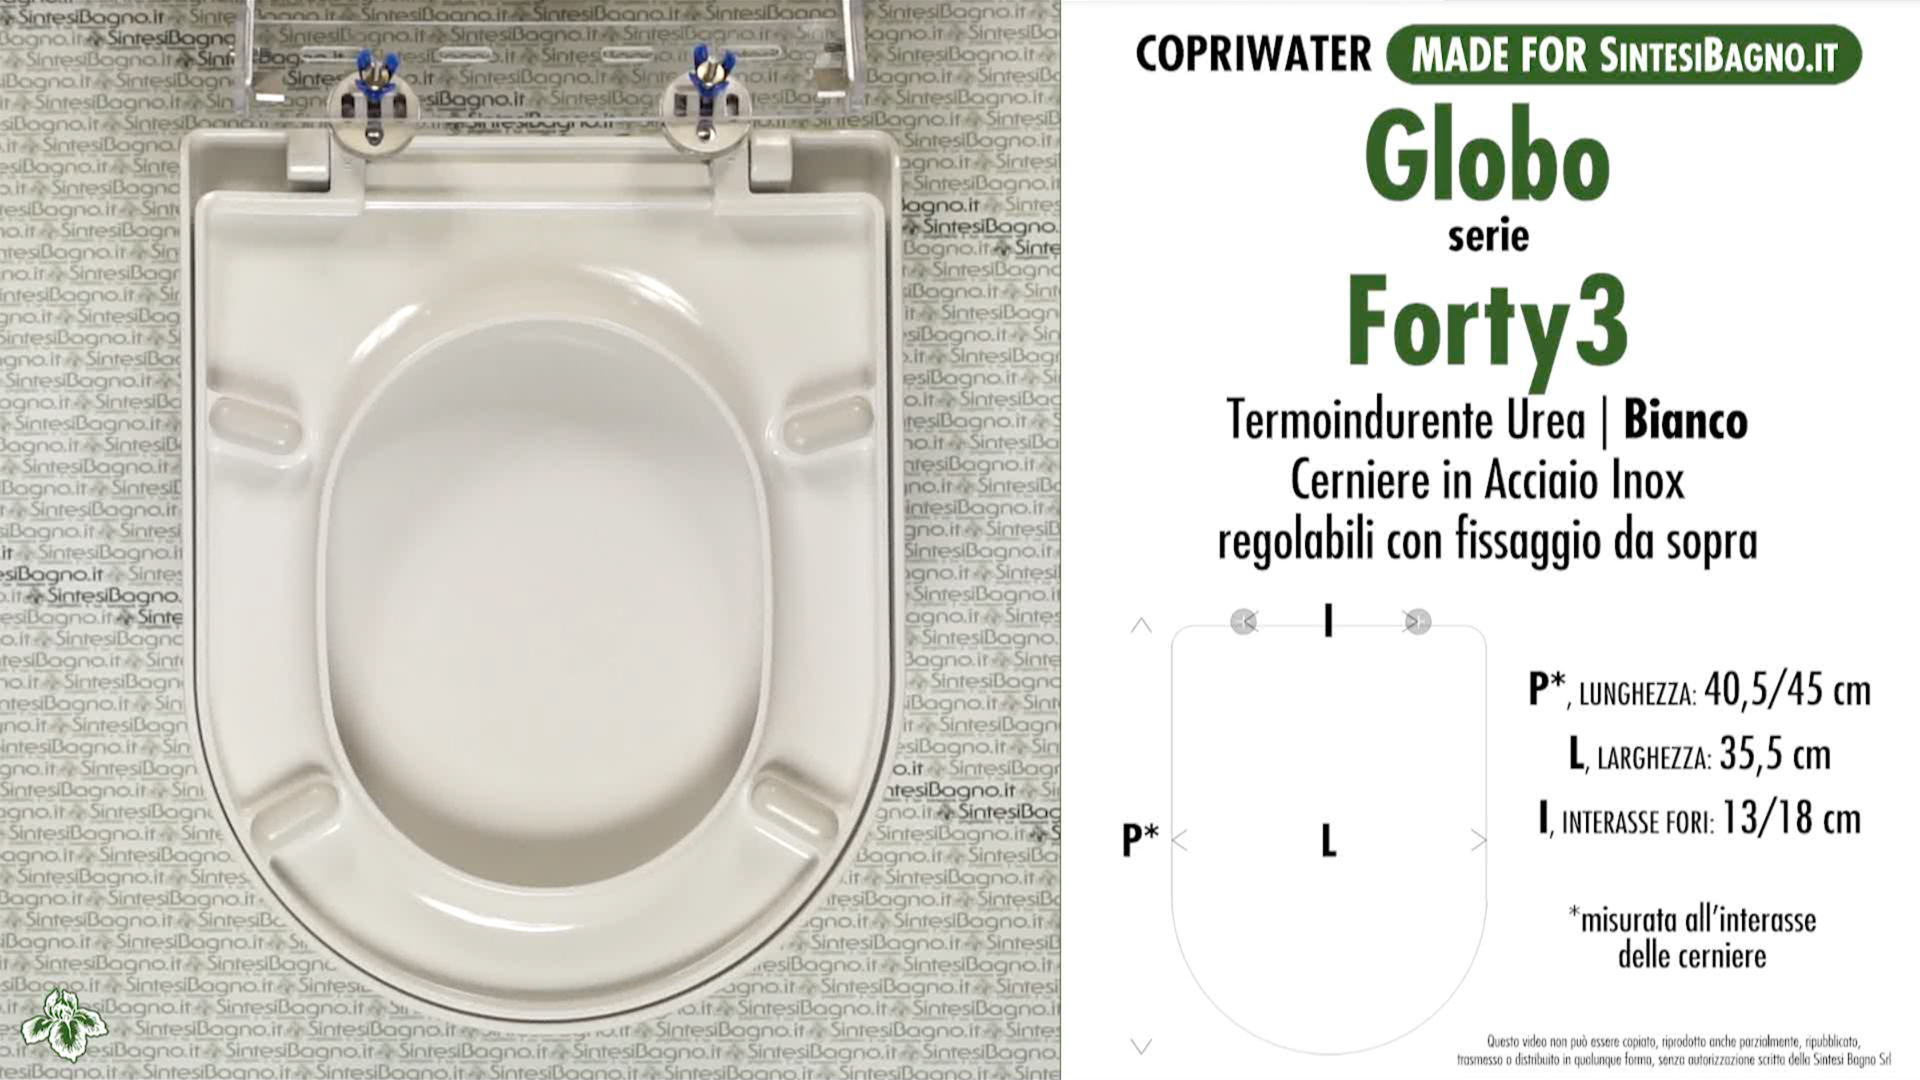 SCHEDA TECNICA MISURE copriwater GLOBO FORTY3